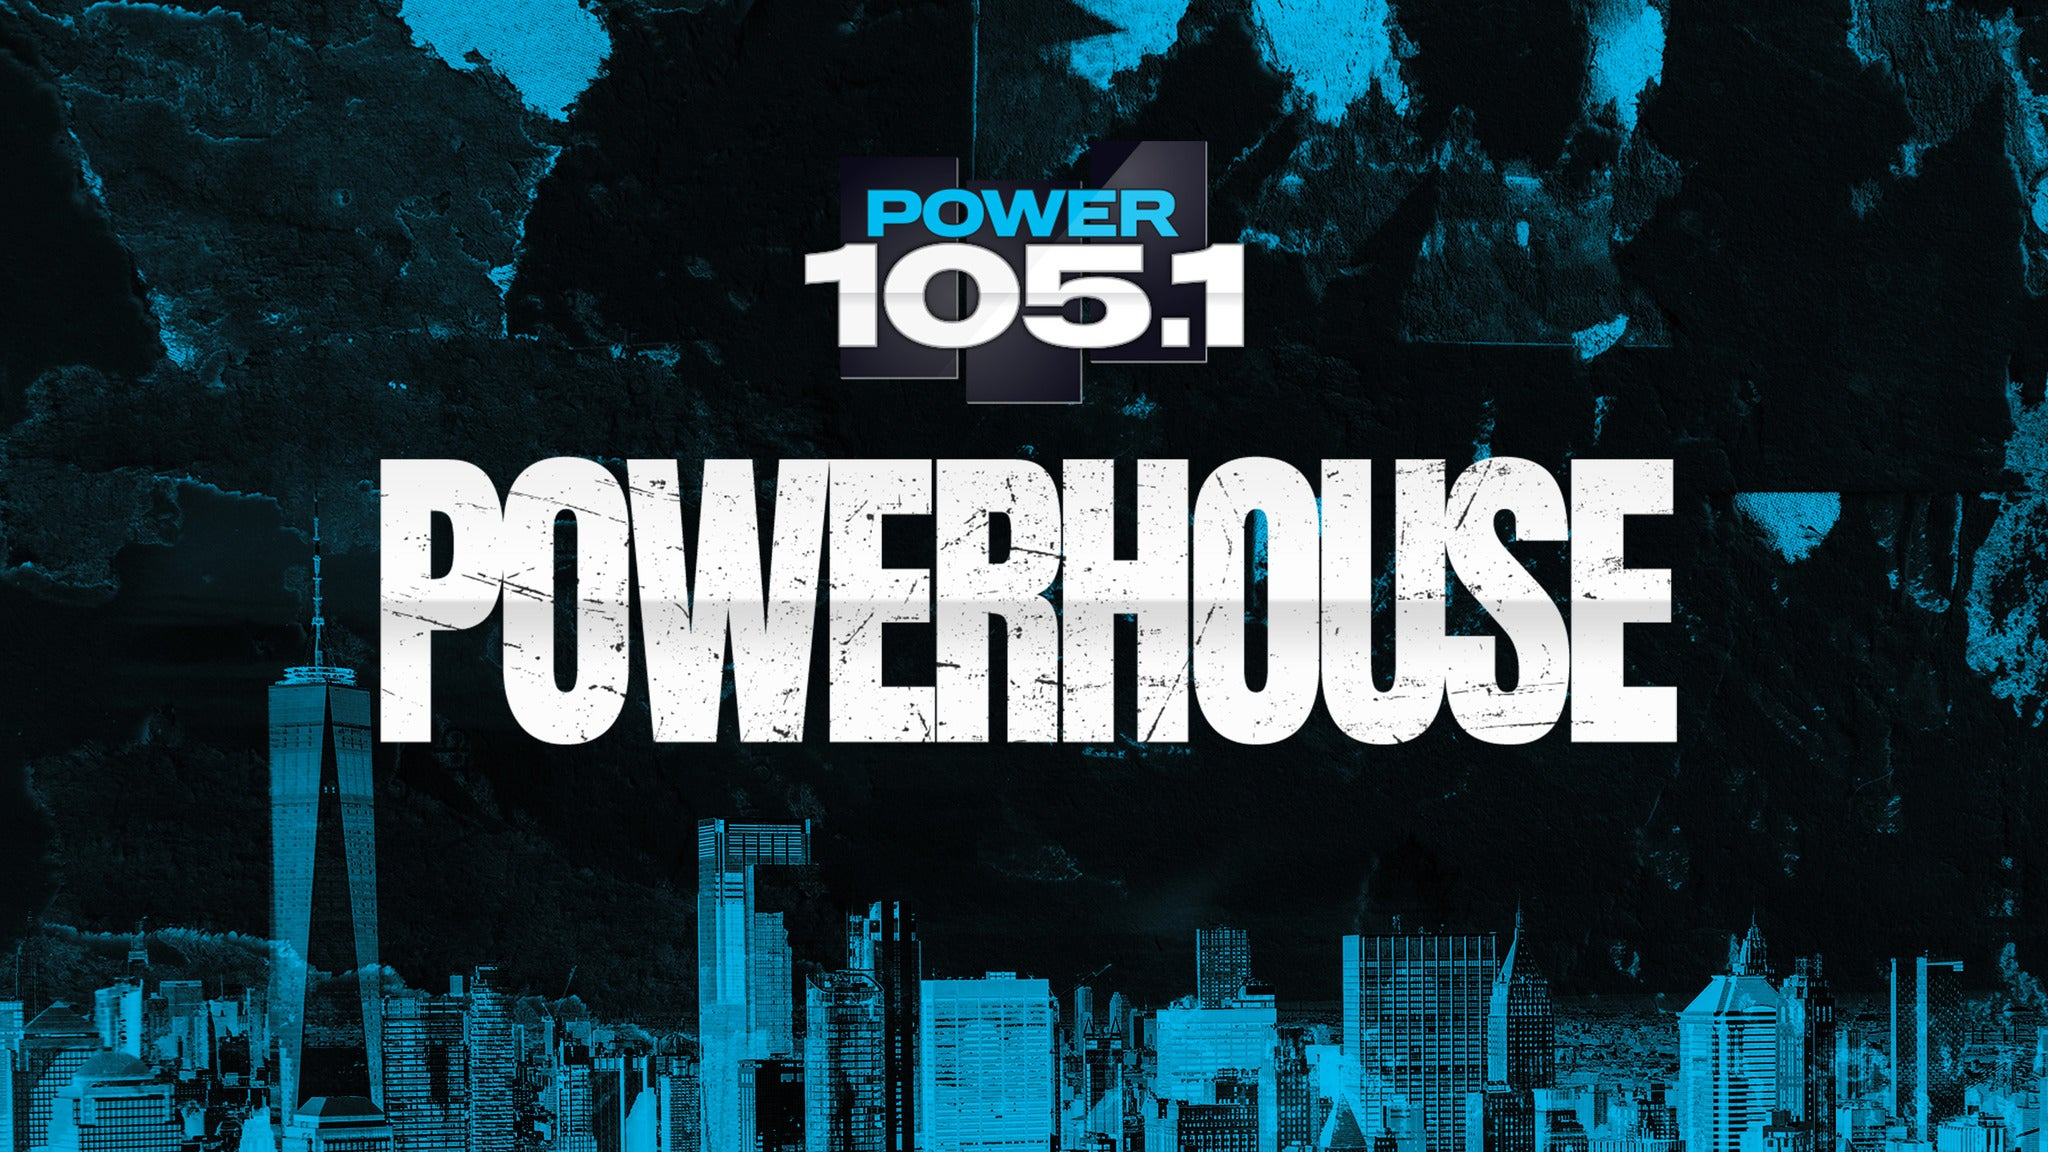 Power 105.1's Powerhouse 2021 at Prudential Center